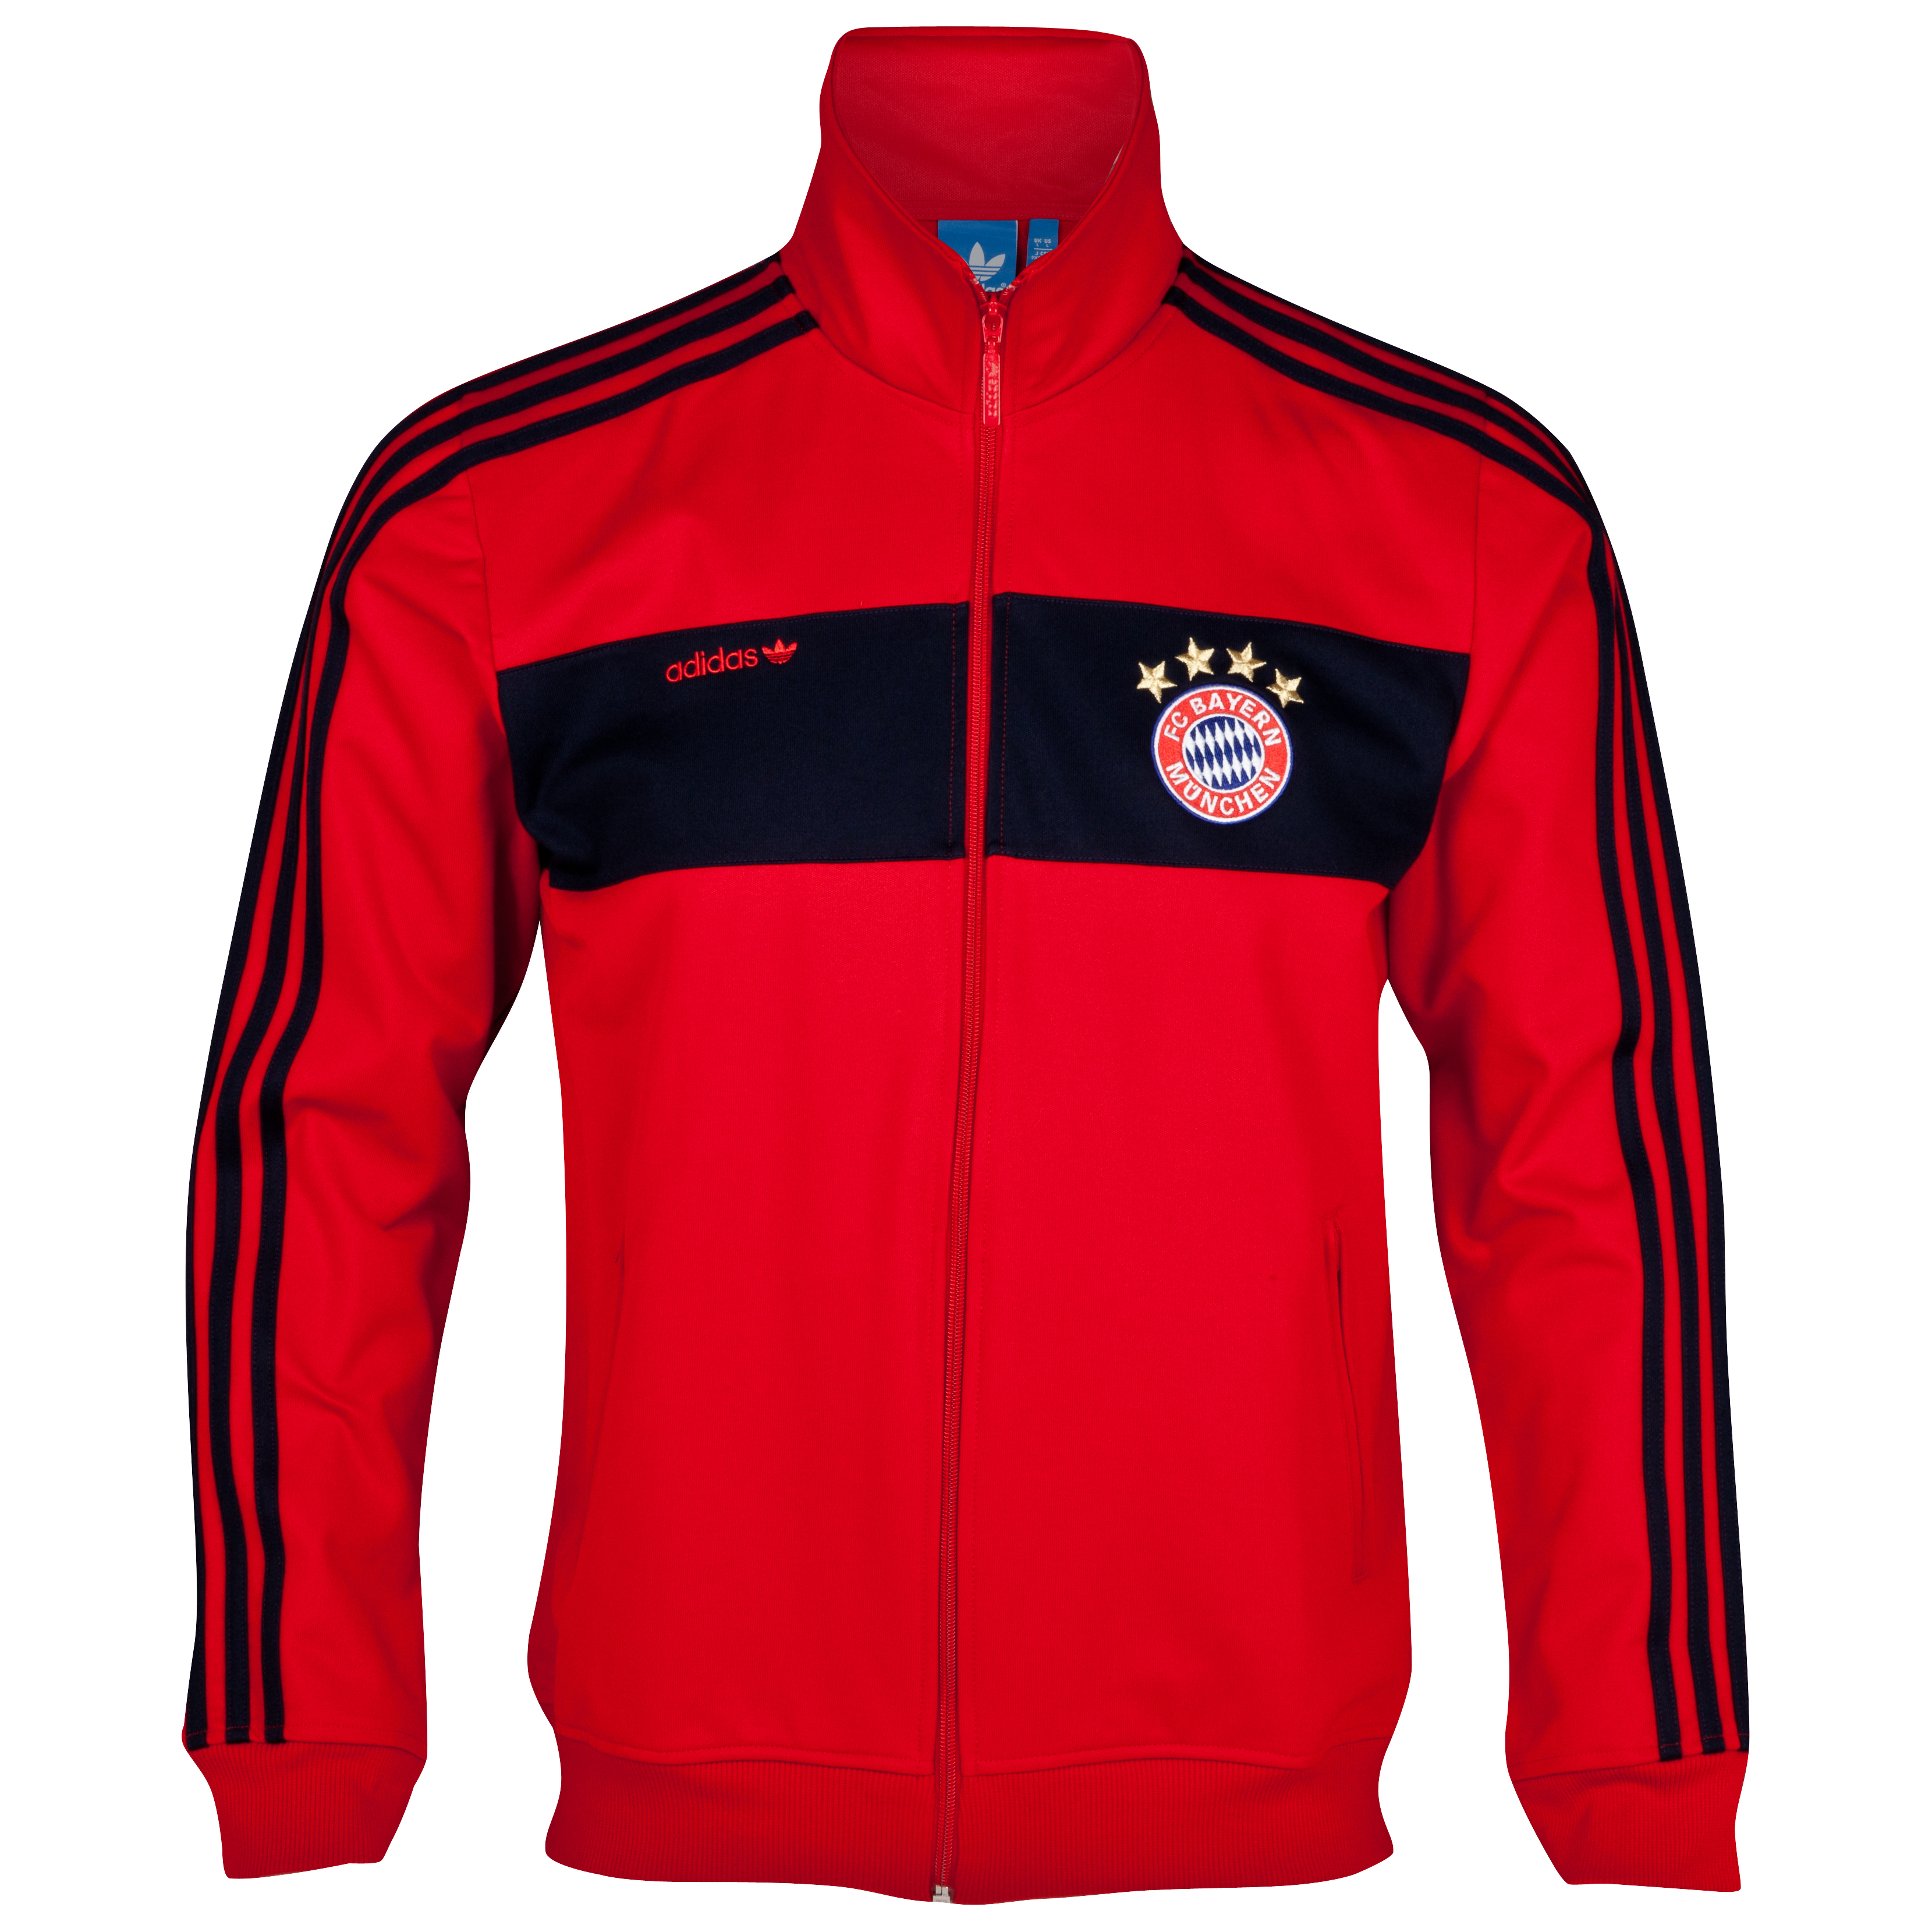 Adidas Originals Beckenbauer Track Top - FCB True Red